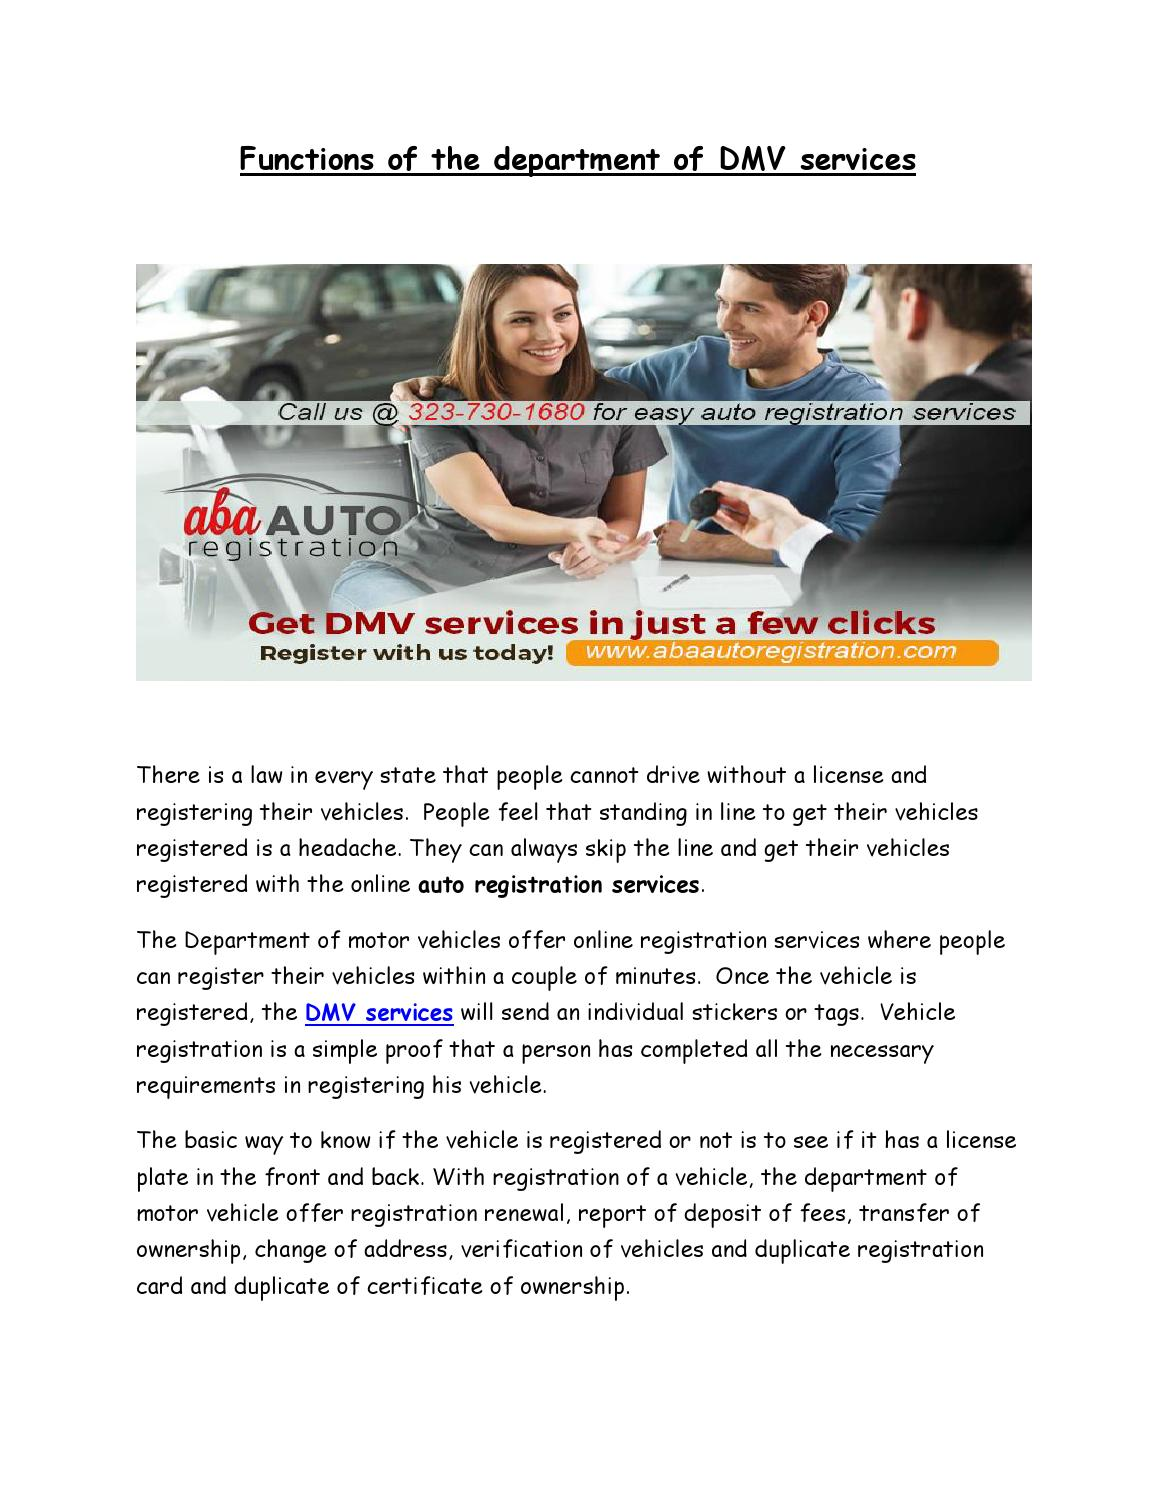 Functions of the department of DMV services by ABA Auto